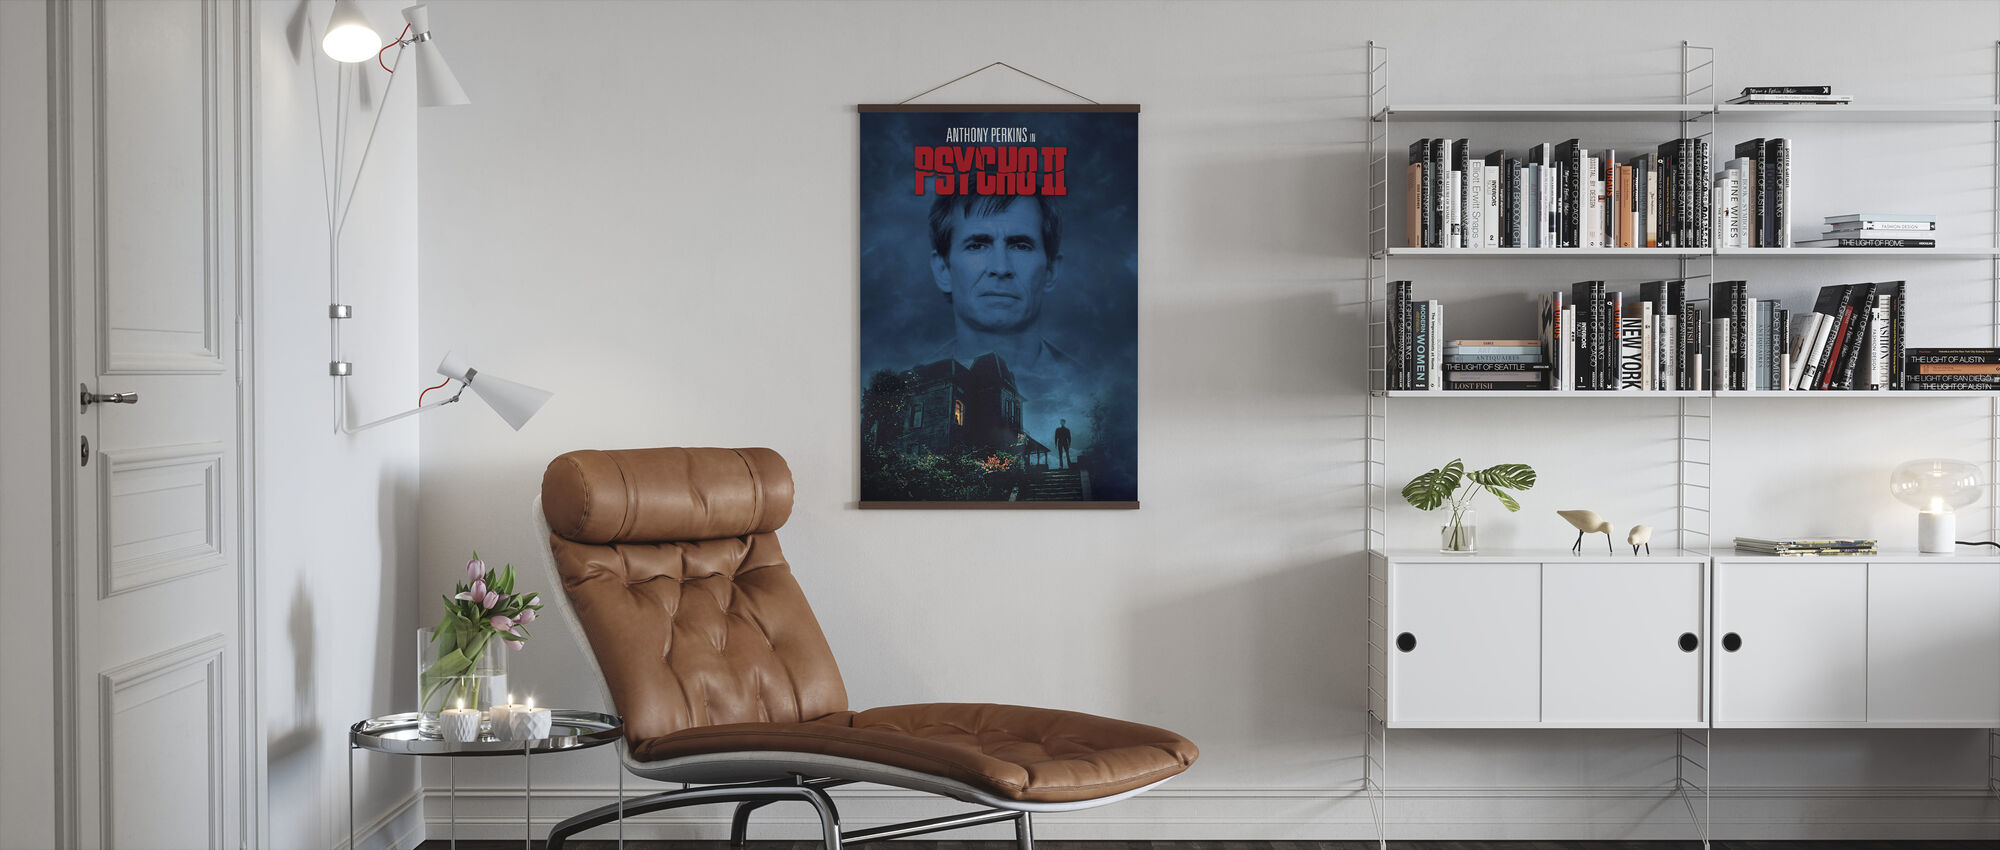 Anthony Perkins in Psycho II - Poster - Living Room